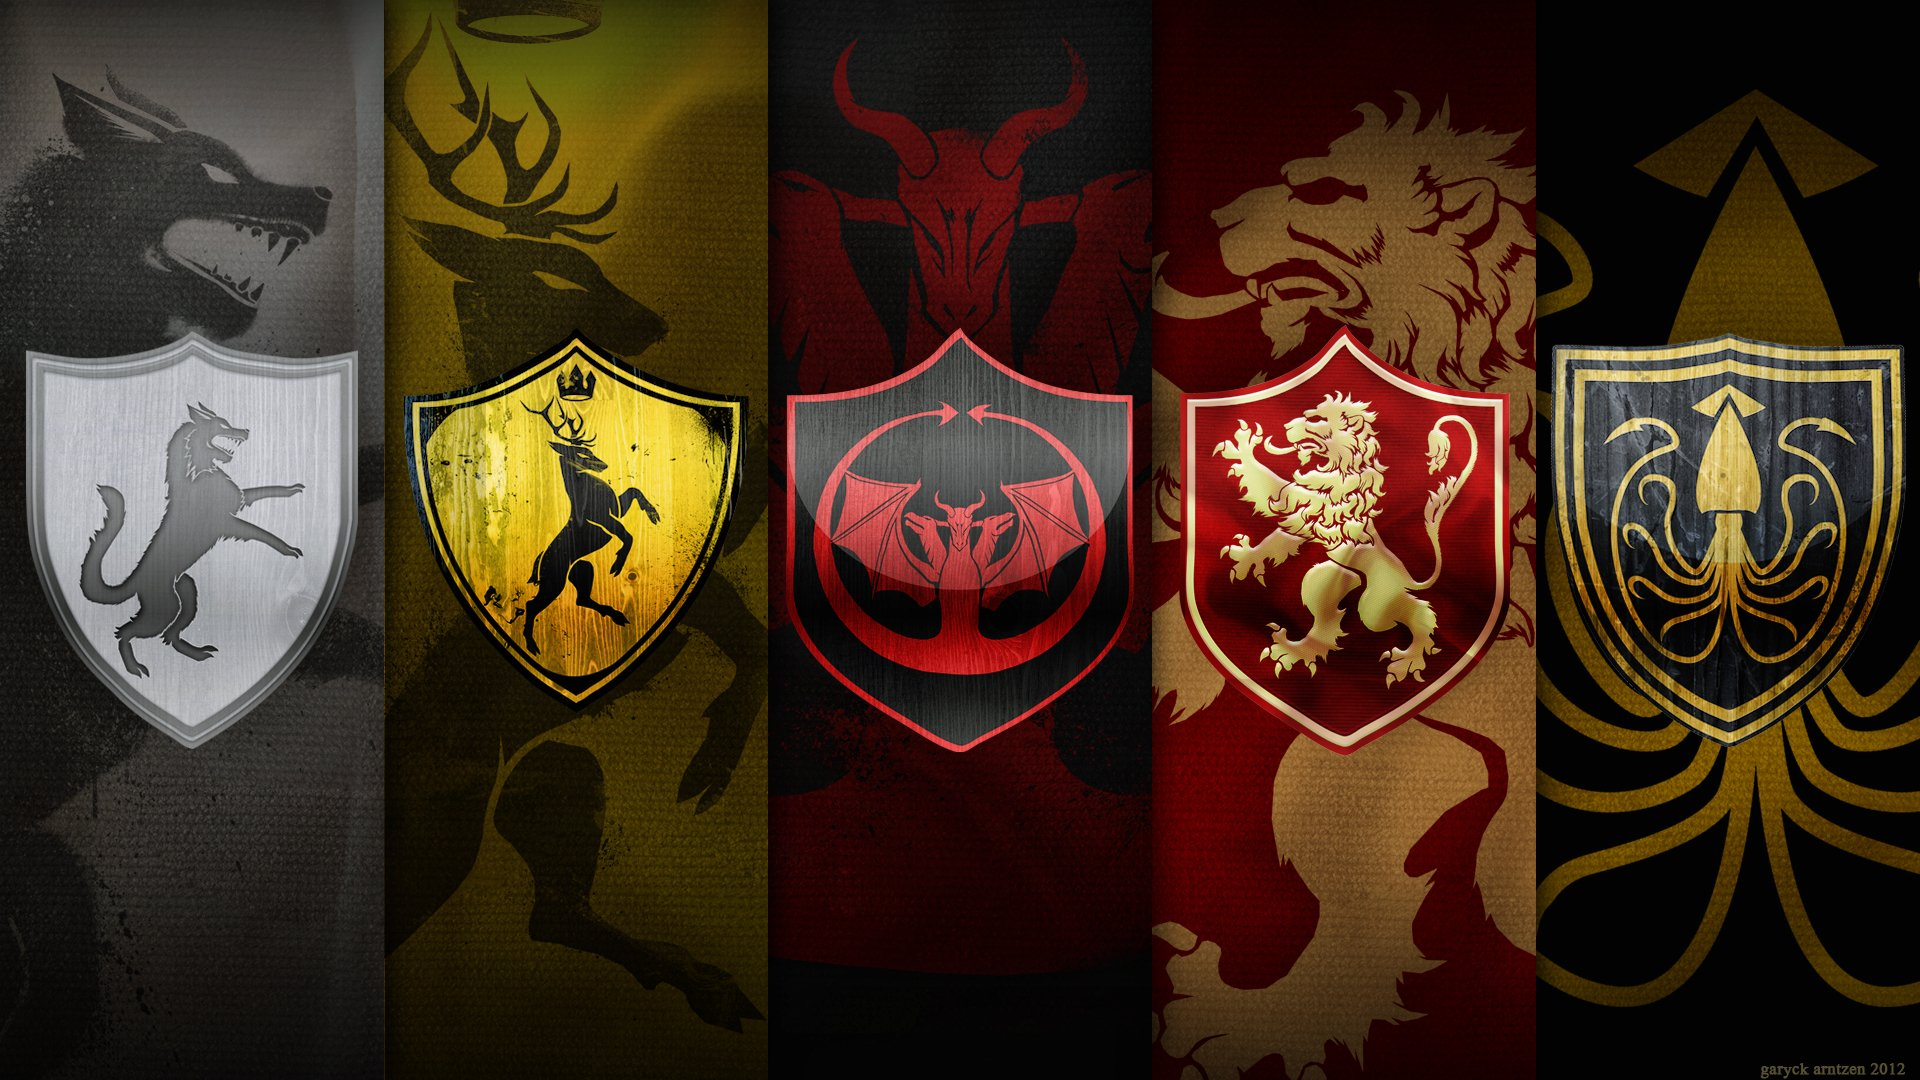 3210 Game Of Thrones HD Wallpapers Background Images   Wallpaper 1920x1080